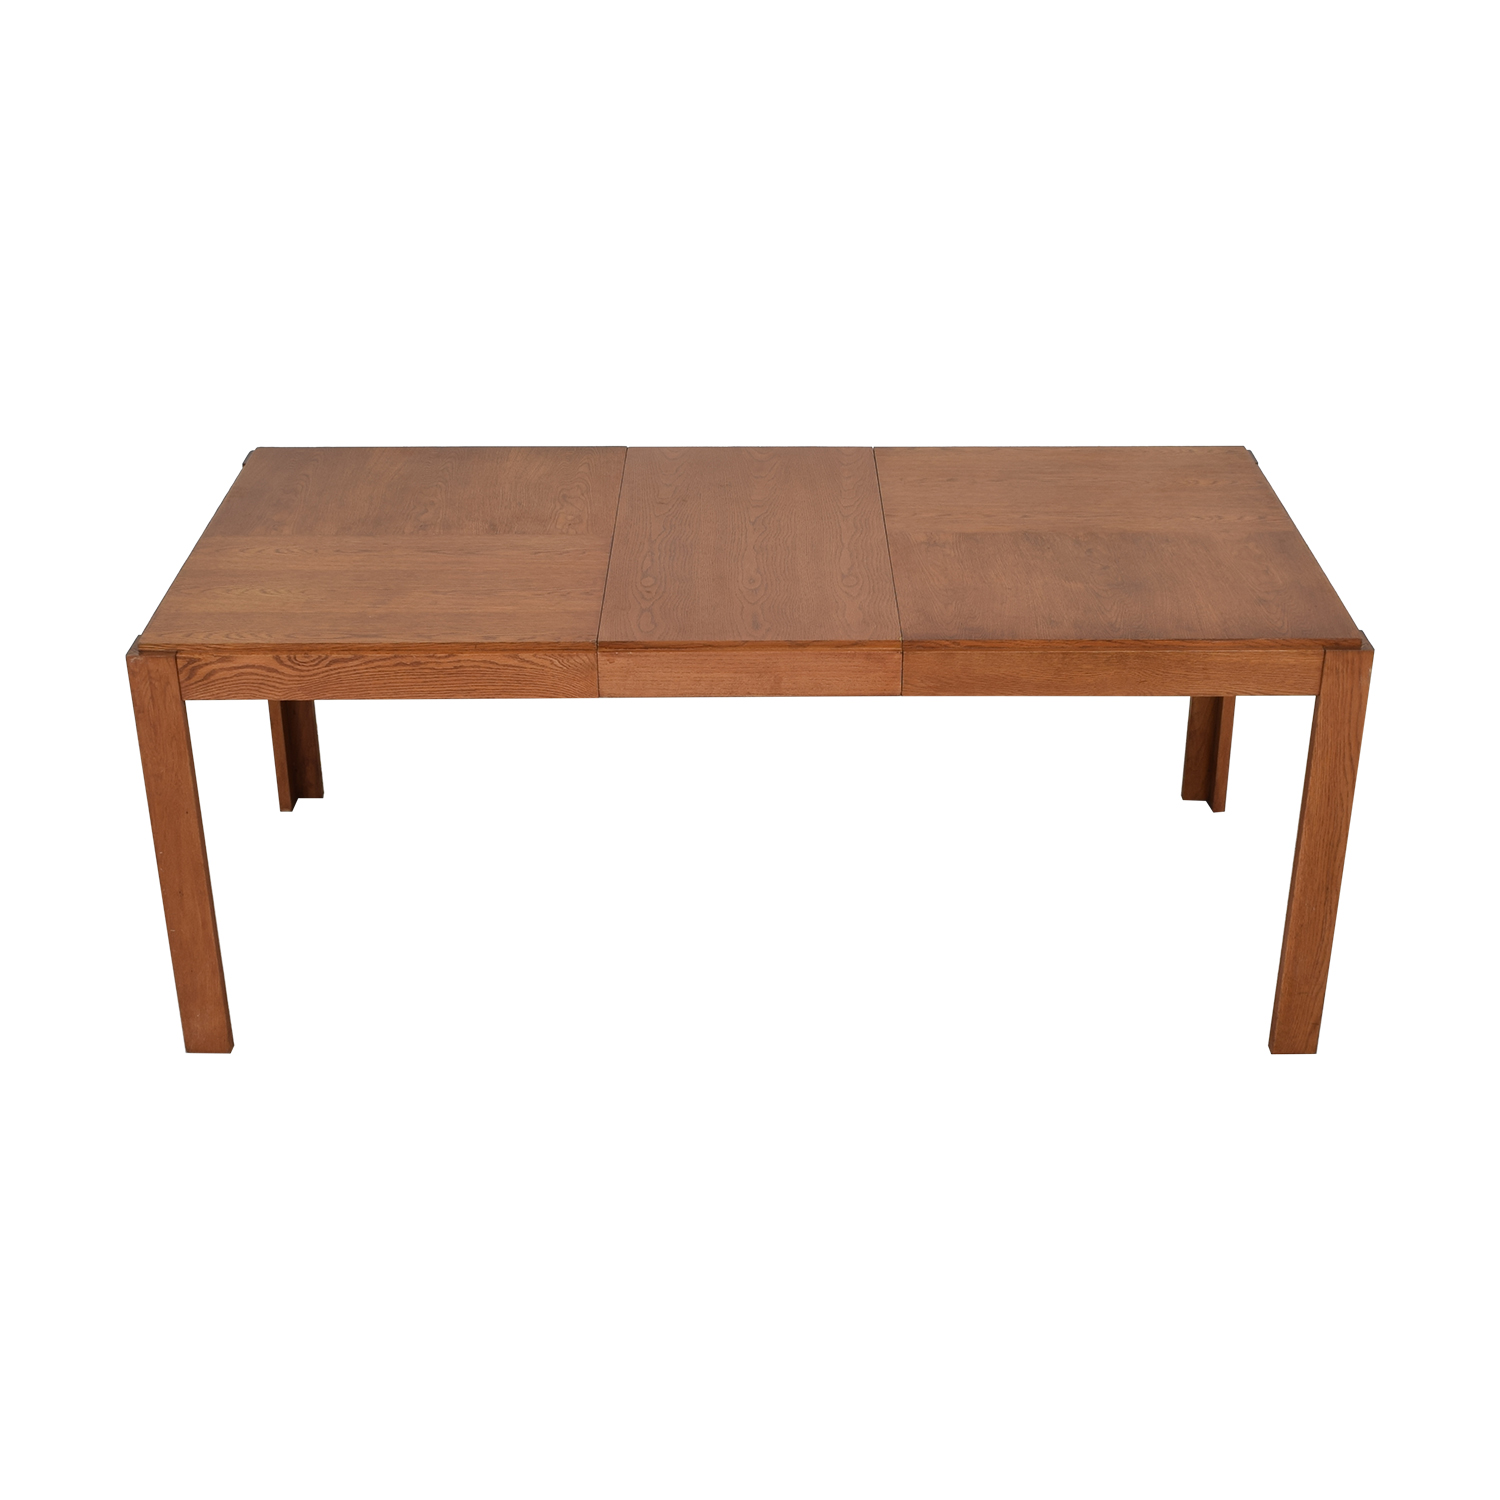 Bernhardt Extension Dining Table / Dinner Tables